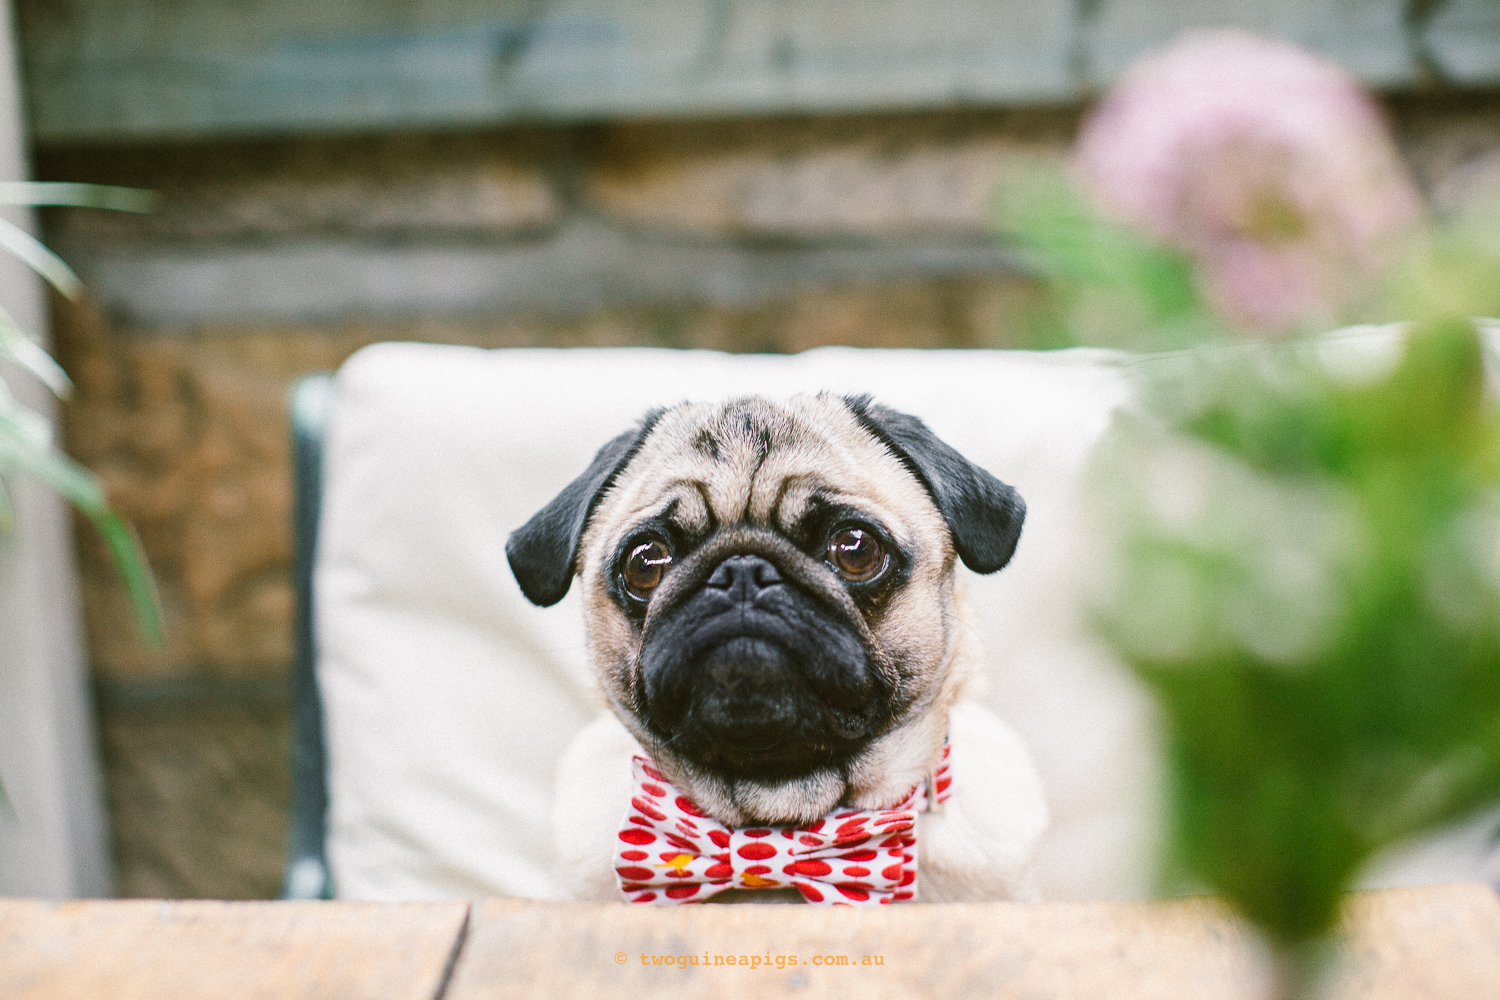 twoguineapigs_pet_photography_ohjaffa_bespoke_bow_tie_designer_pug